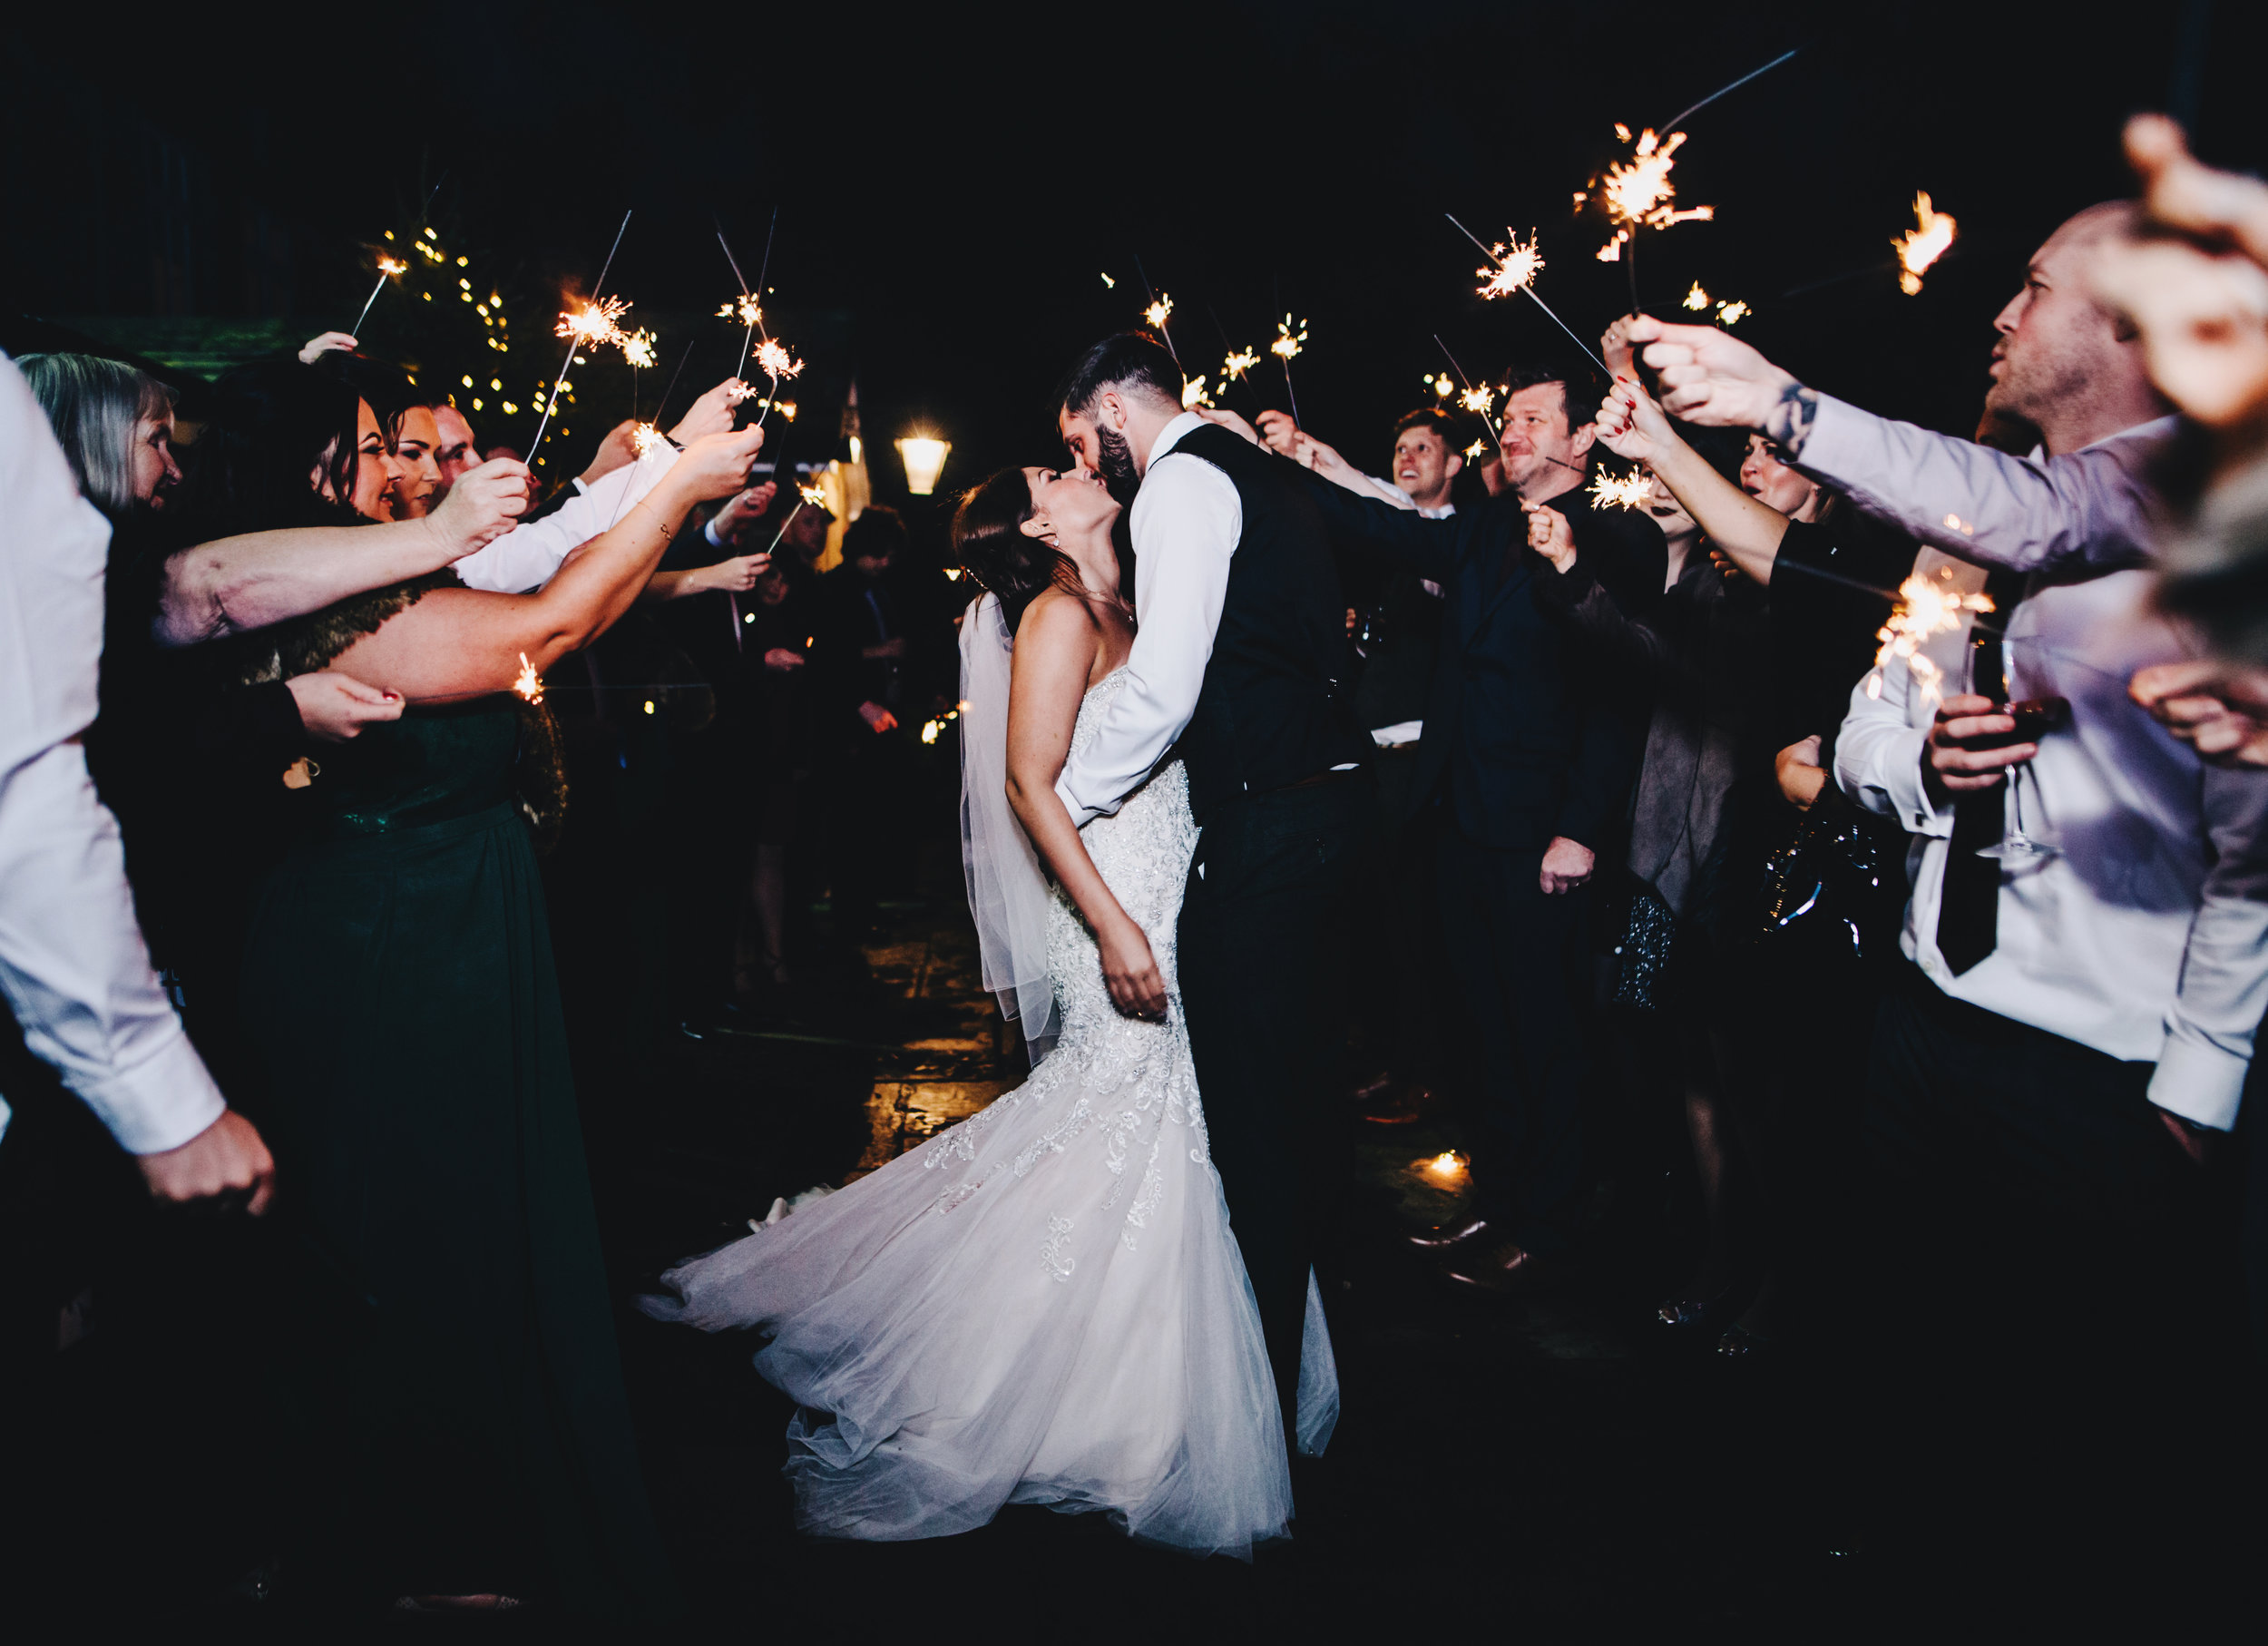 bride and groom kiss - sparklers at winter wedding